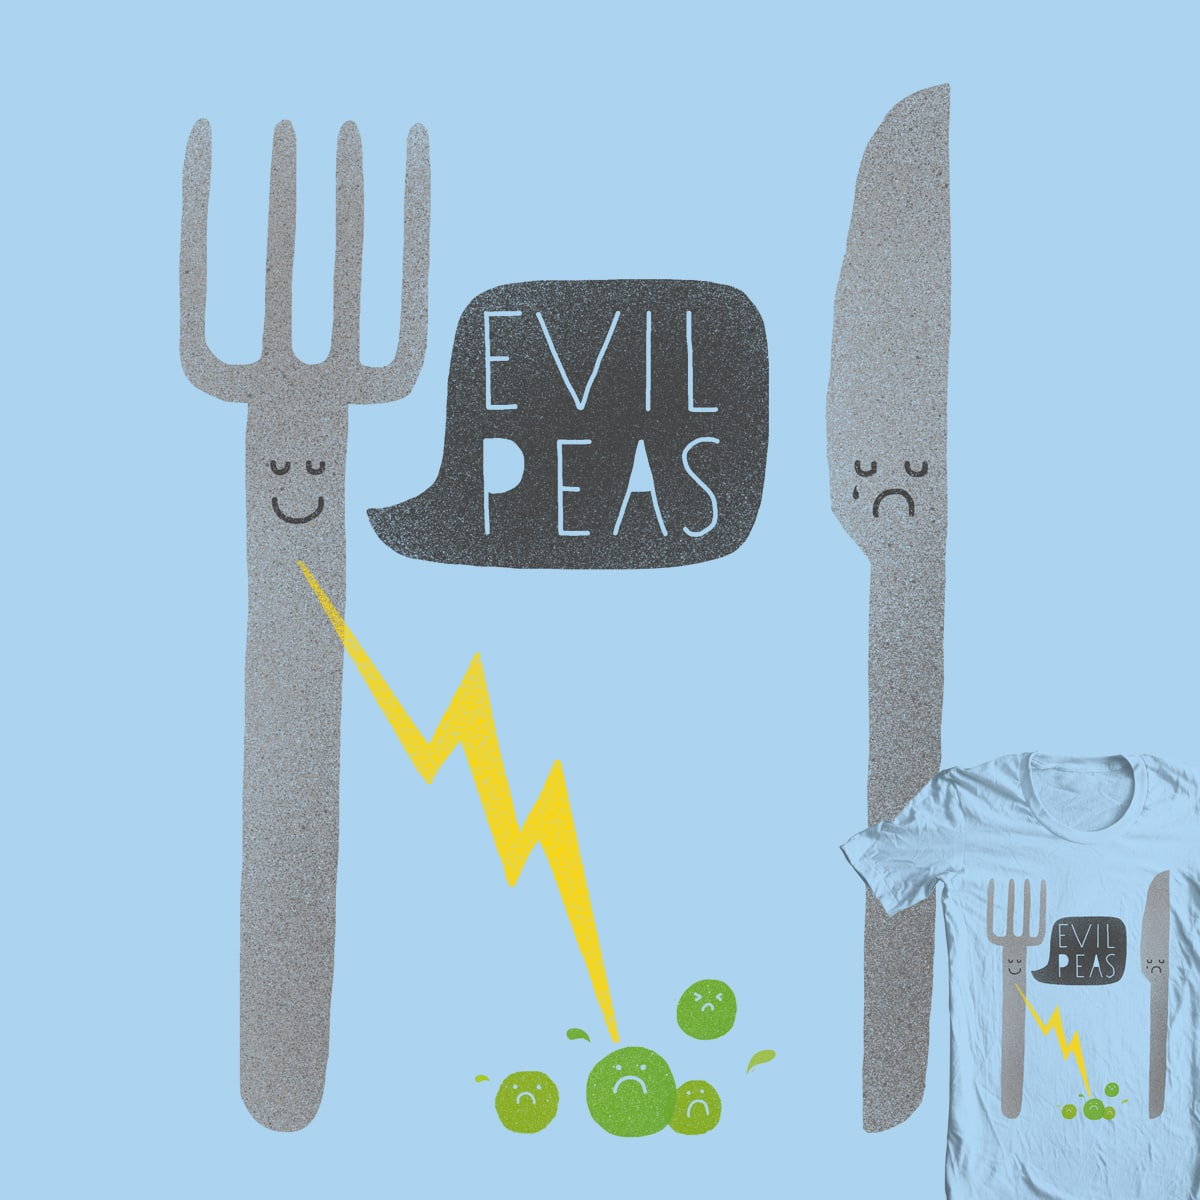 Fork Lightning by Farnell on Threadless